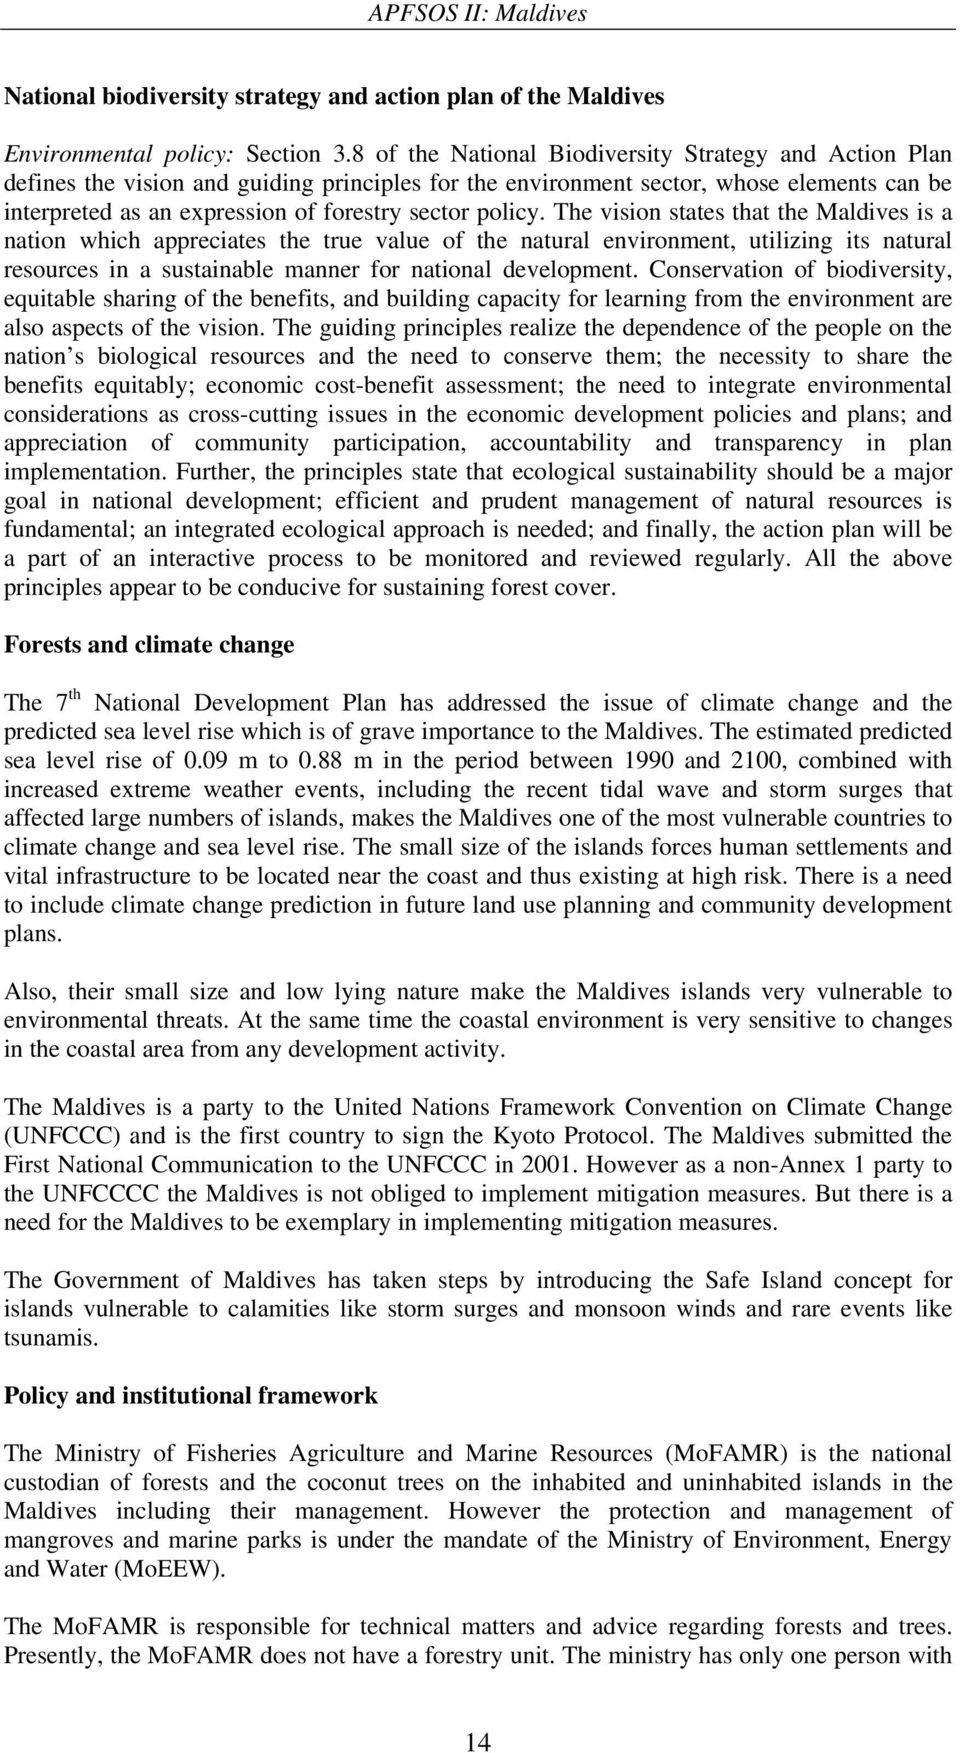 policy. The vision states that the Maldives is a nation which appreciates the true value of the natural environment, utilizing its natural resources in a sustainable manner for national development.